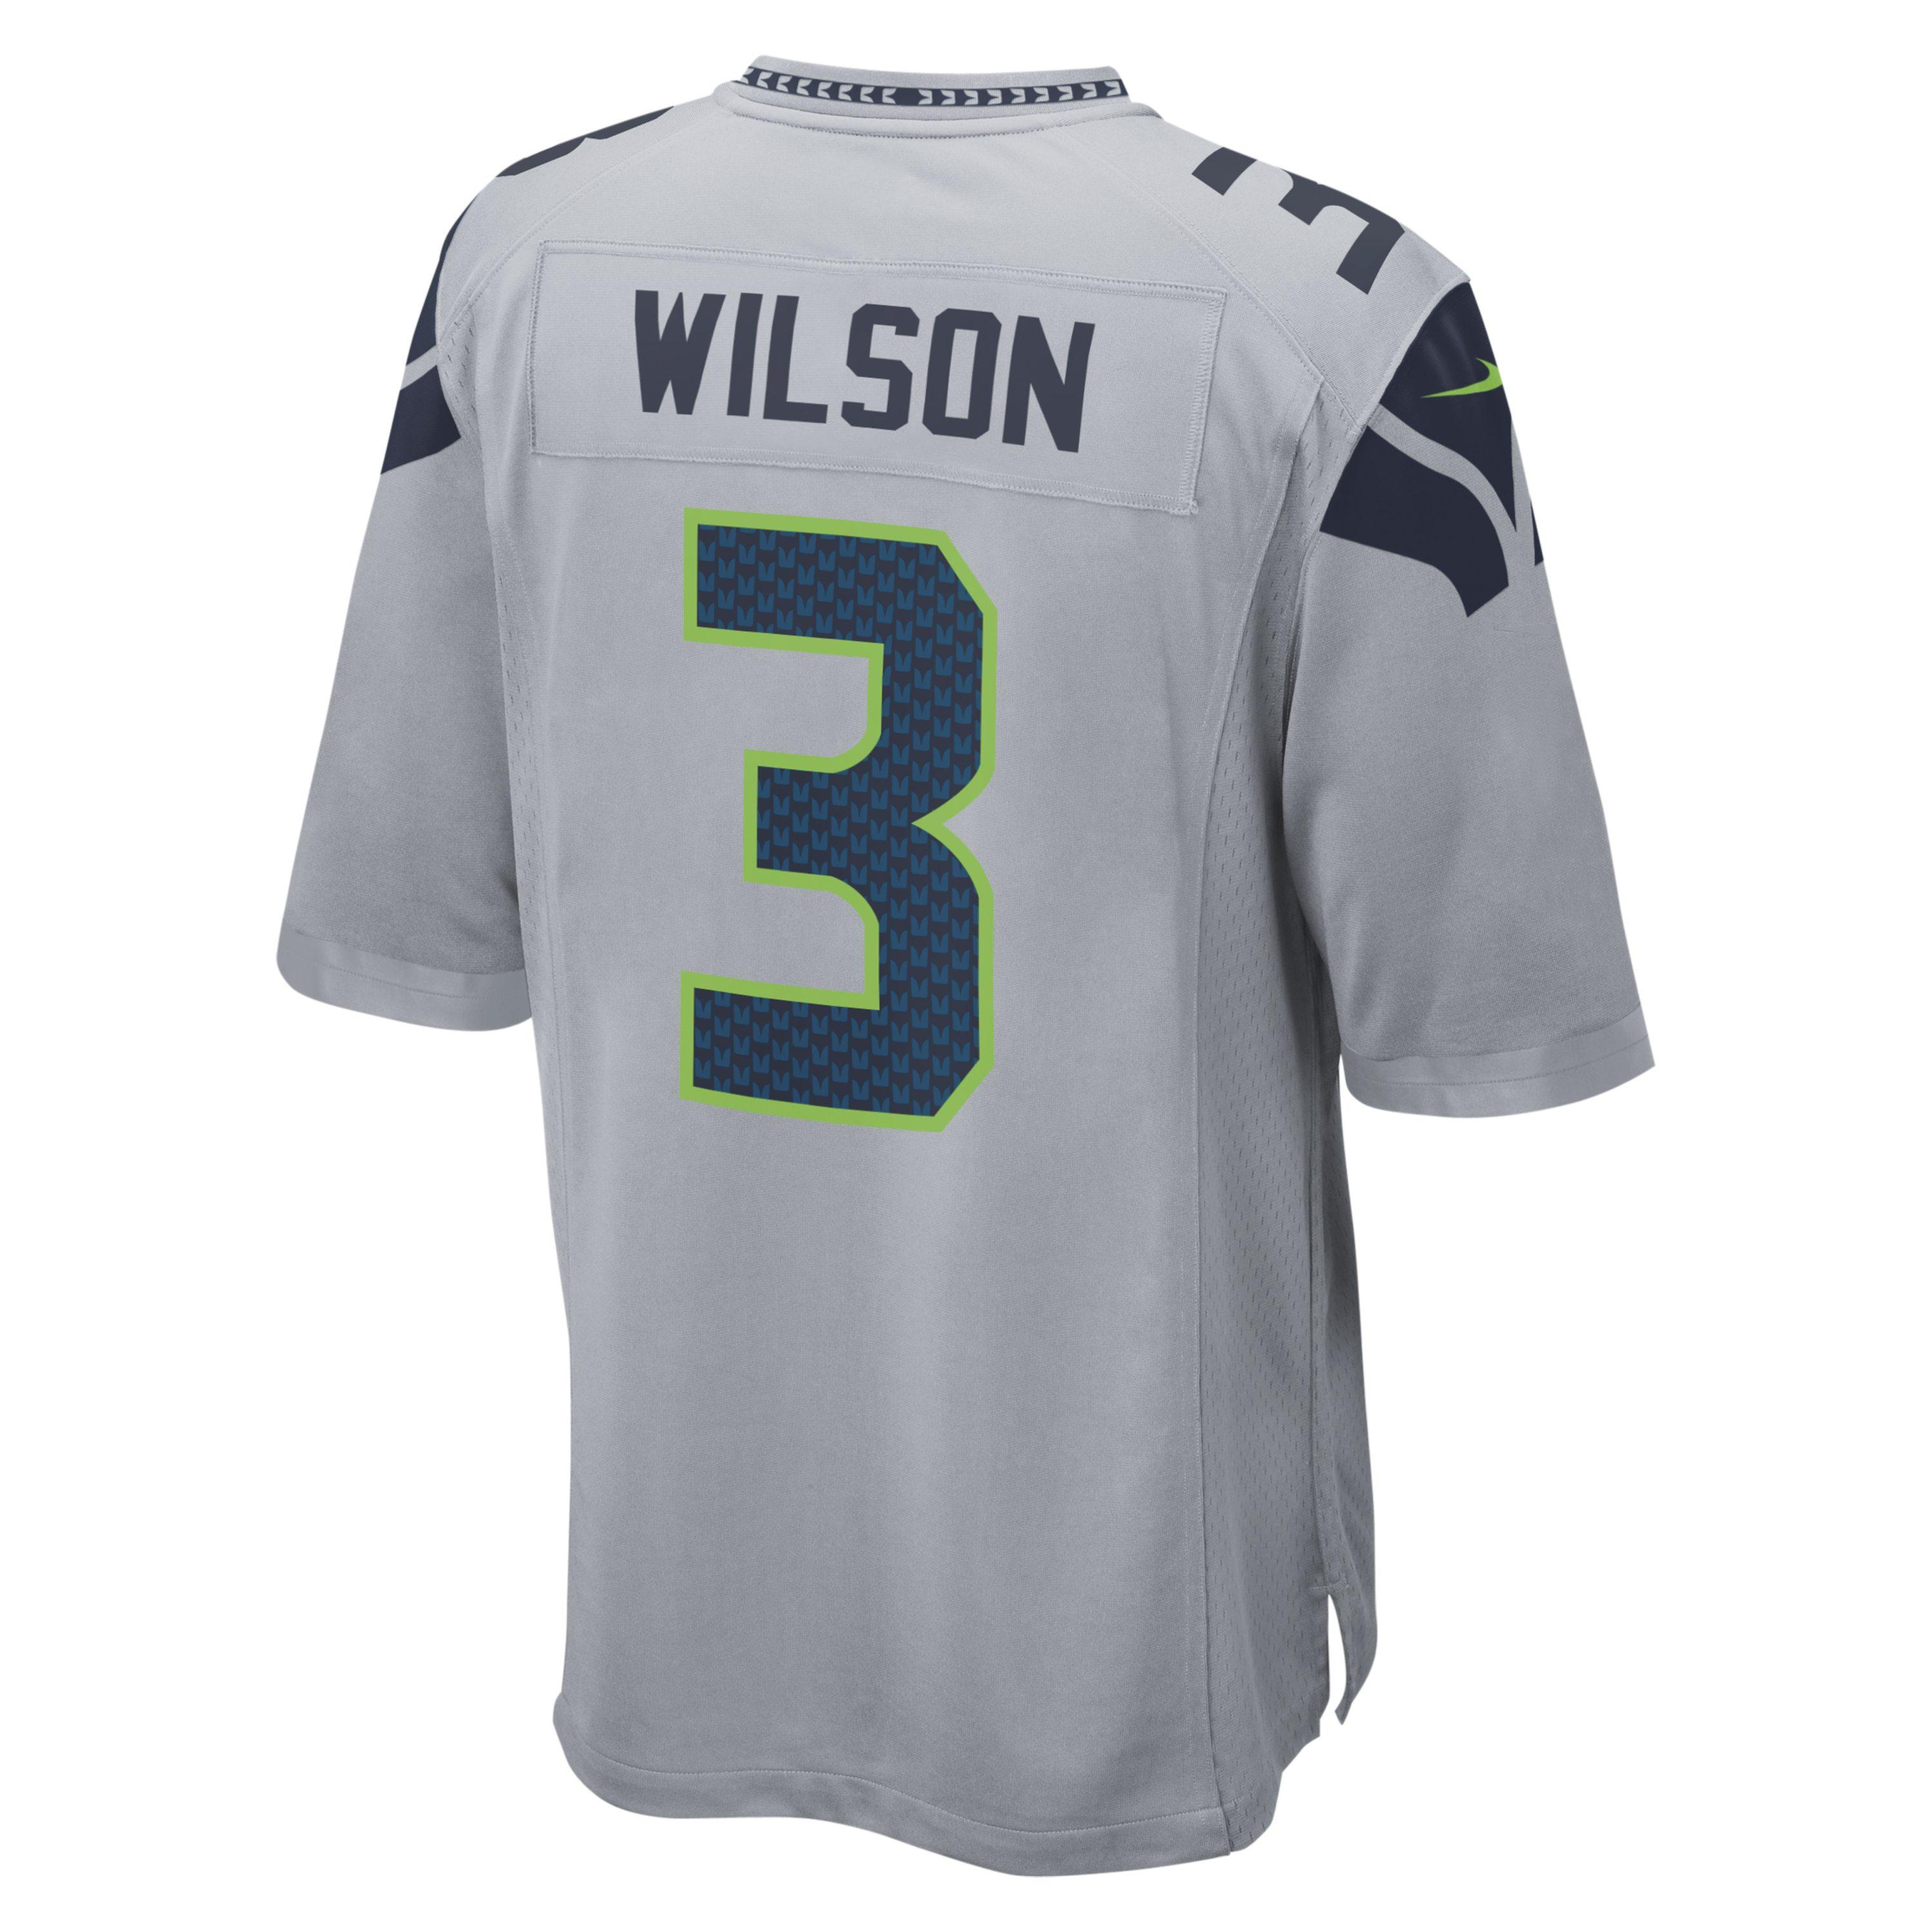 a2f296967eb Nike. Men s Gray Nfl Seattle Seahawks (russell Wilson) American Football  Alternate Game Jersey